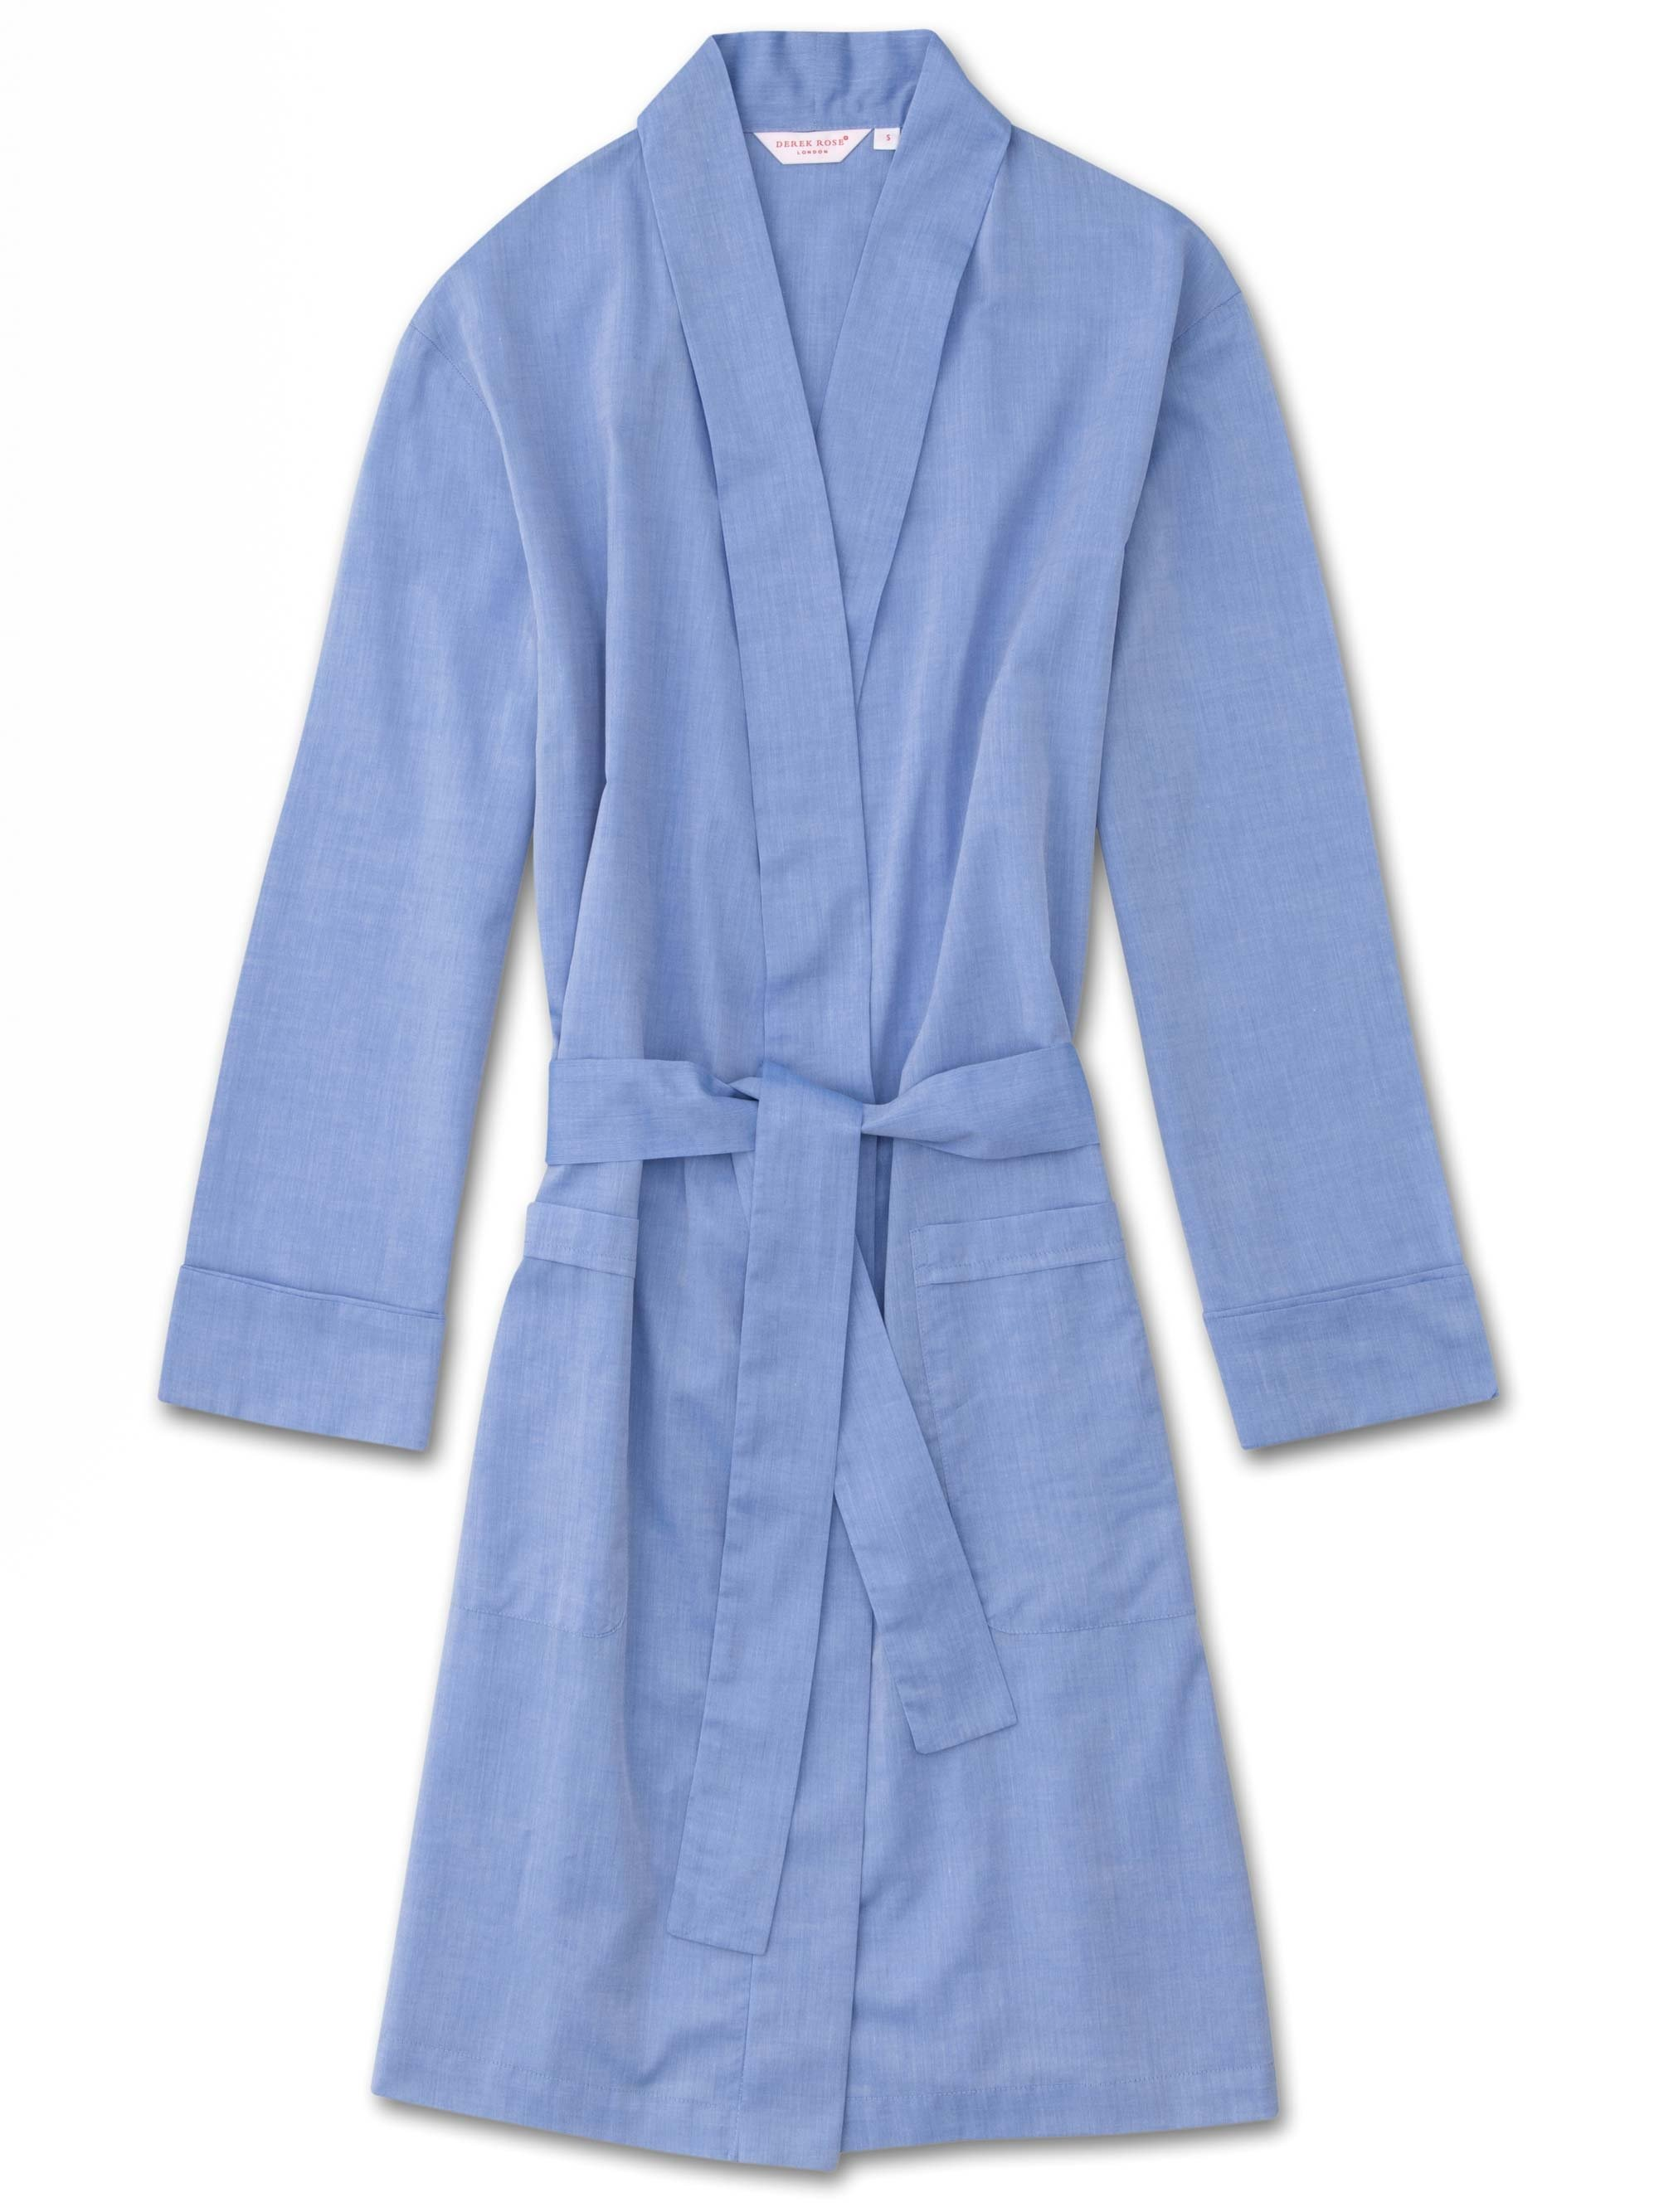 Women's Dressing Gown Amalfi Cotton Batiste Blue